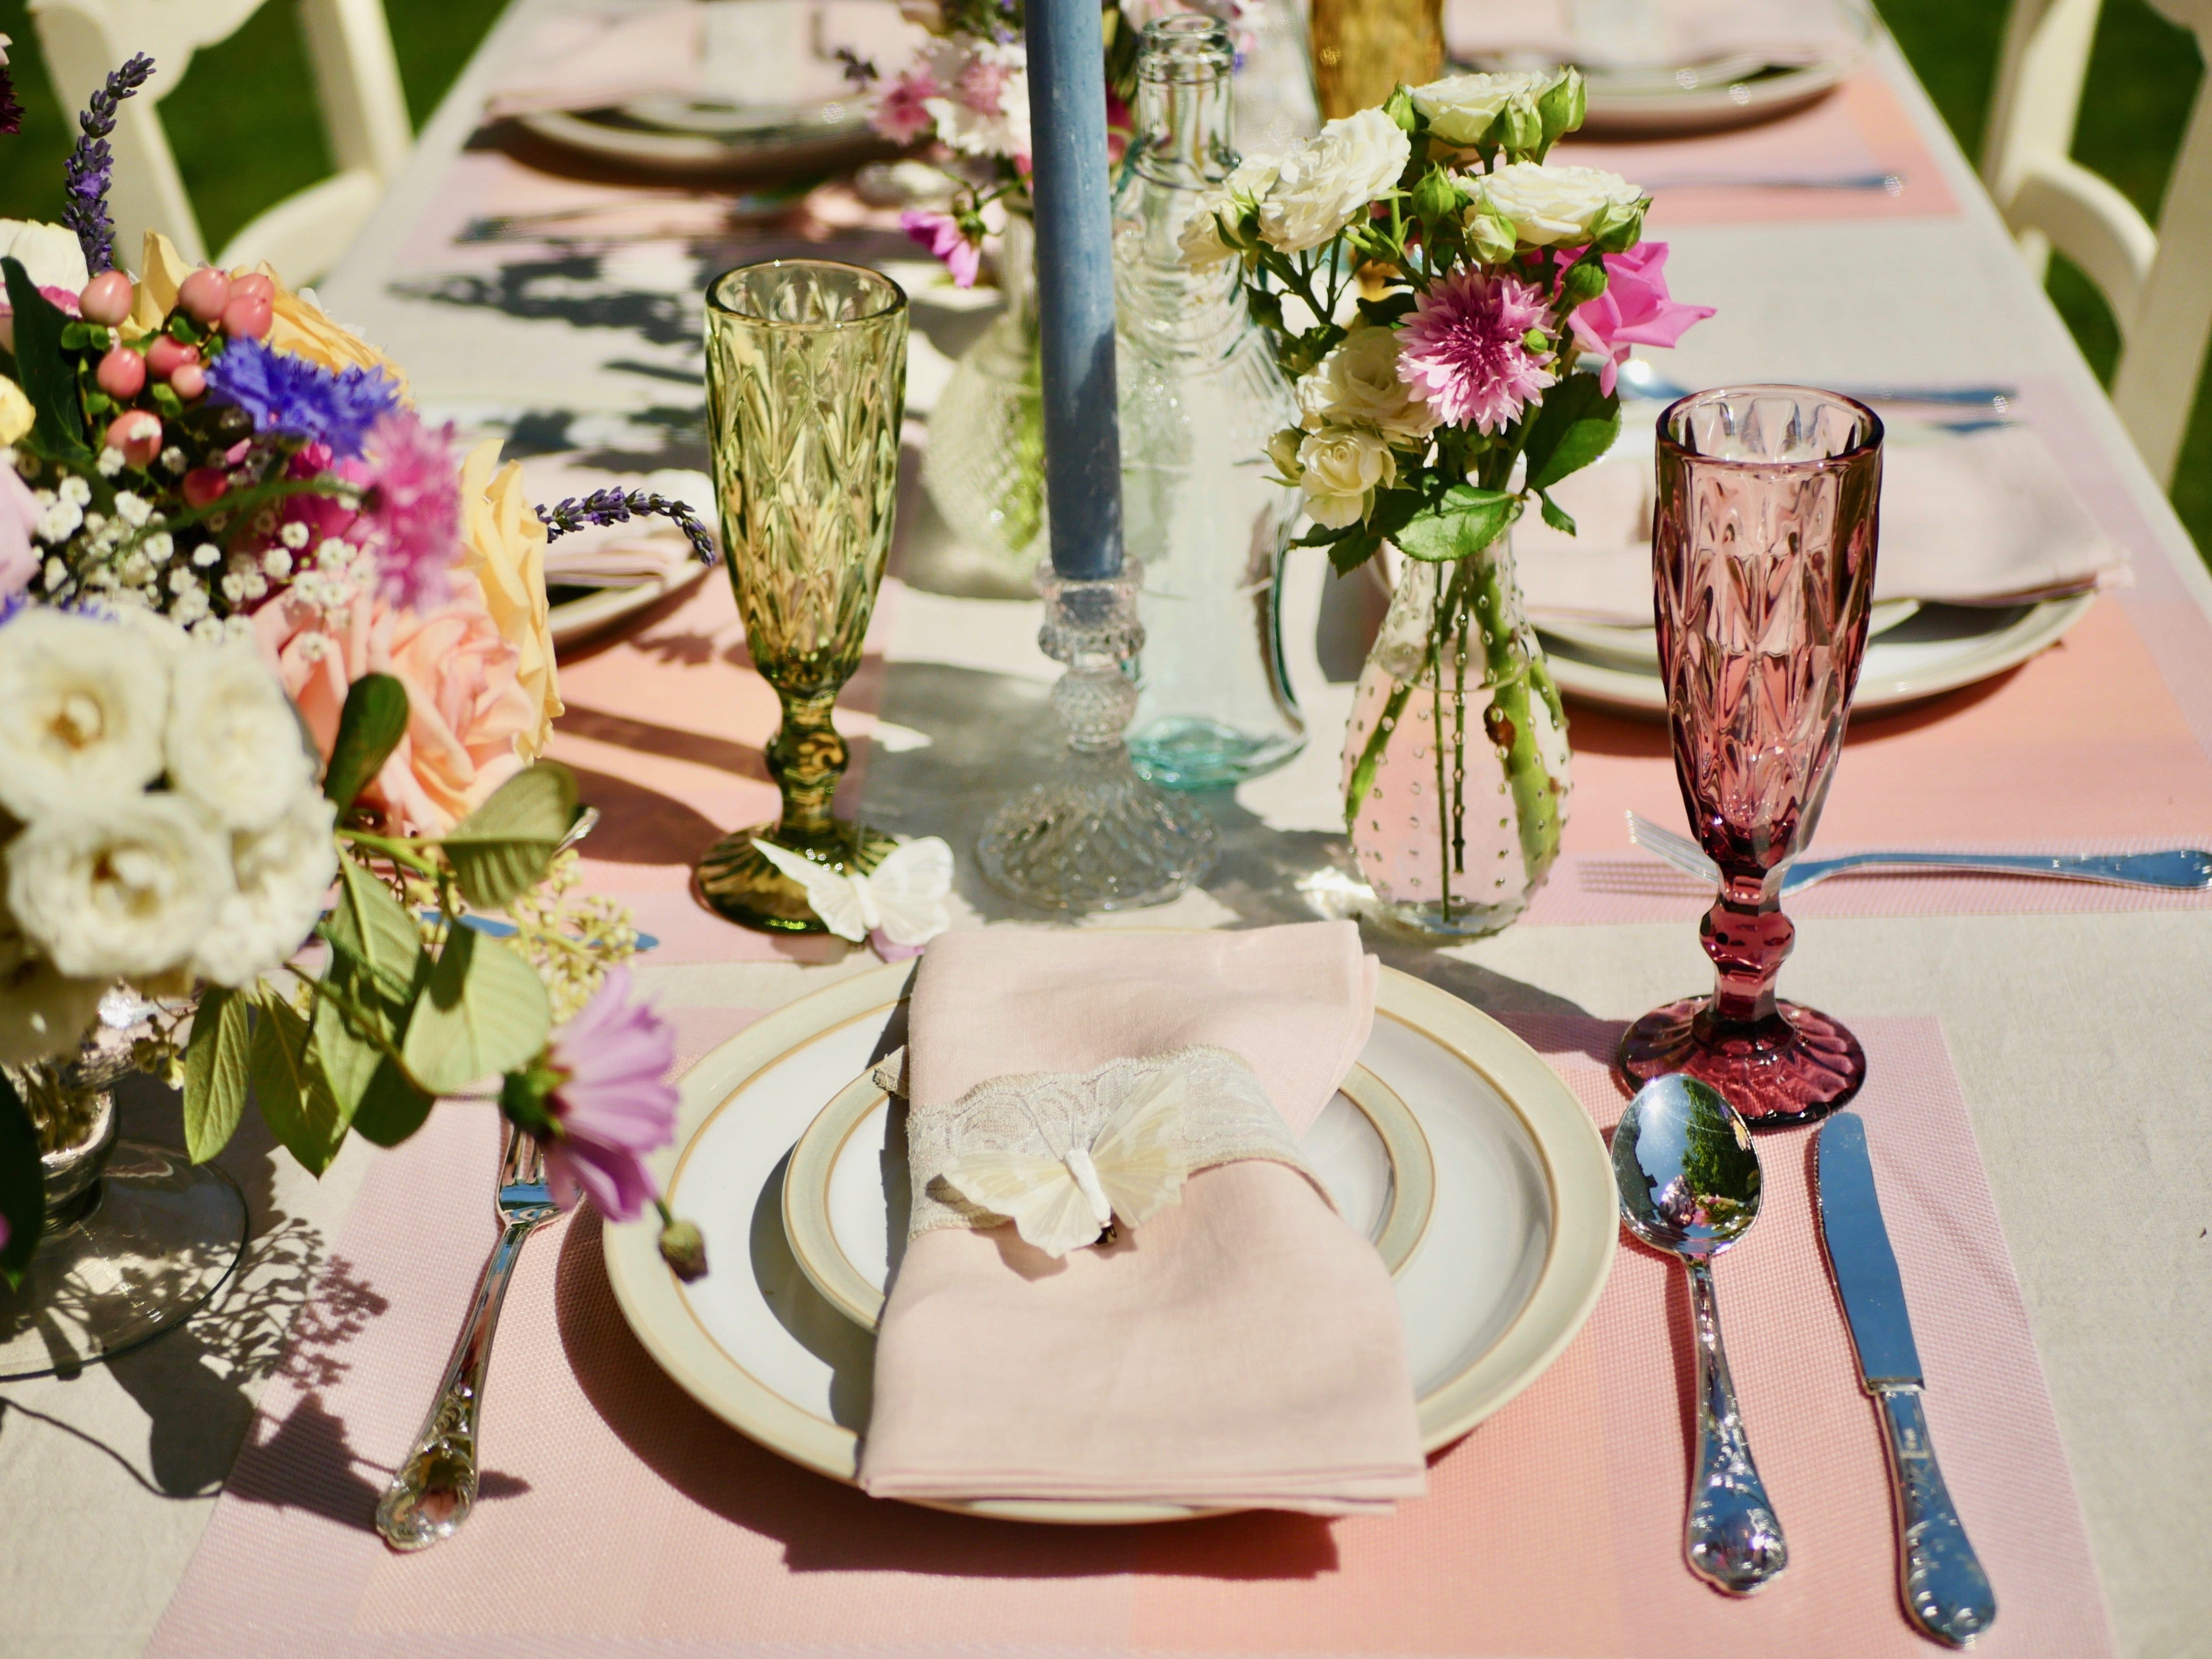 Beautiful summery table, complete with jewel coloured champagne glasses, blush linen napkins, candlesticks, coloured candles, bud vases, placemats and a fish bottle.